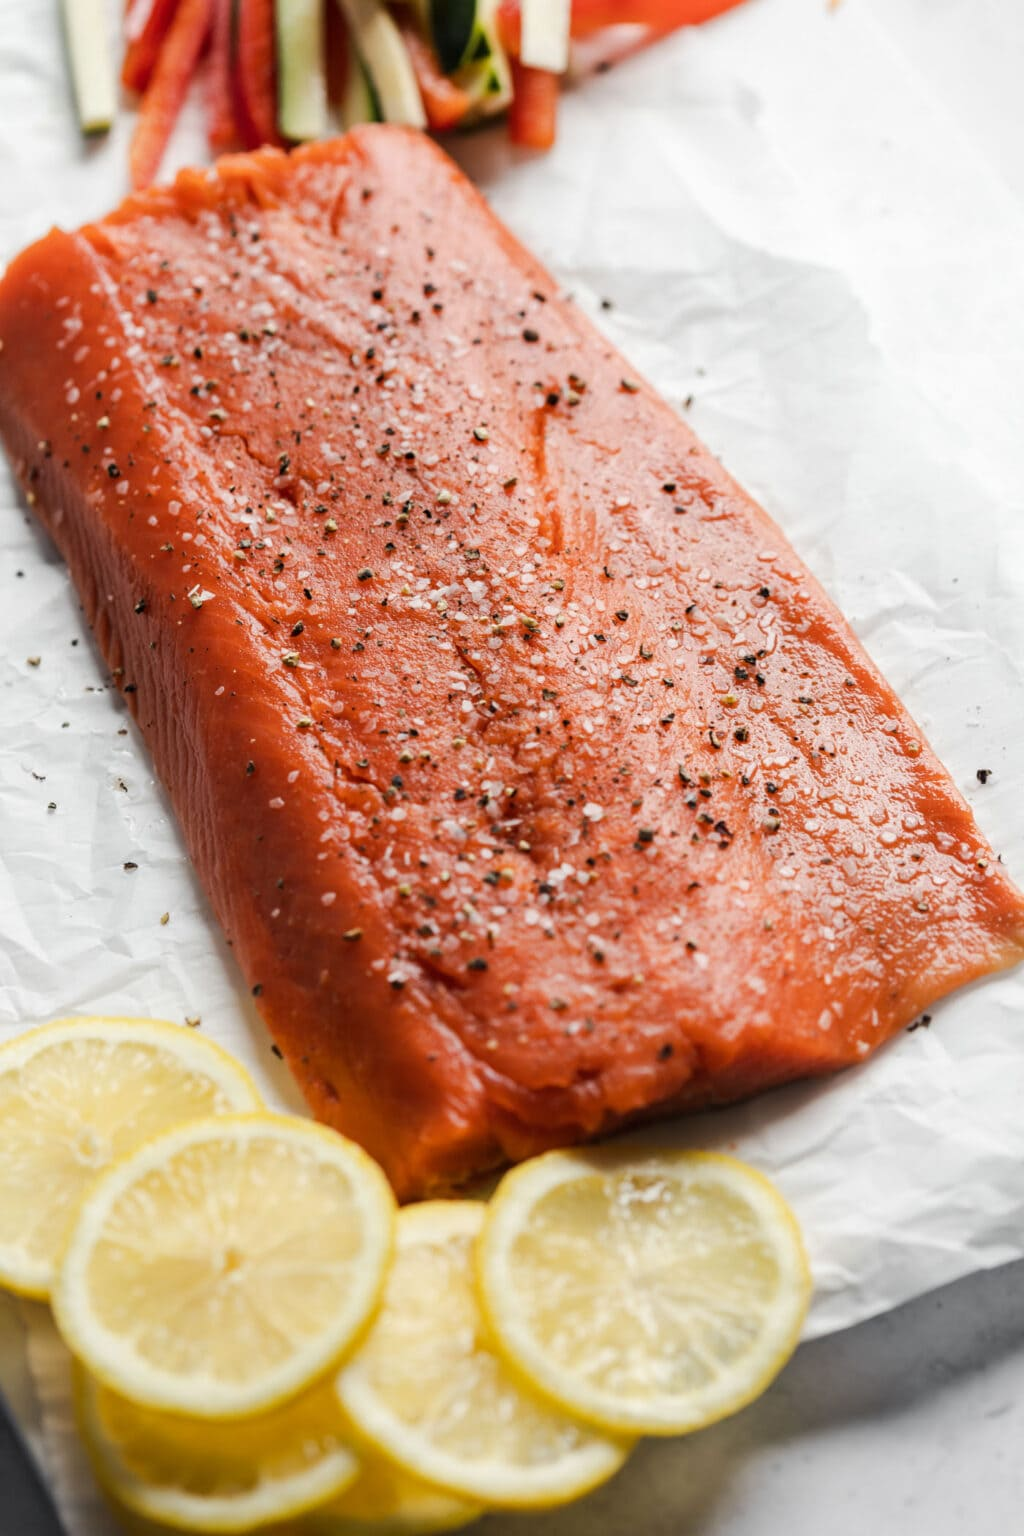 Raw salmon filet with salt and pepper, and lemon slices in the background.